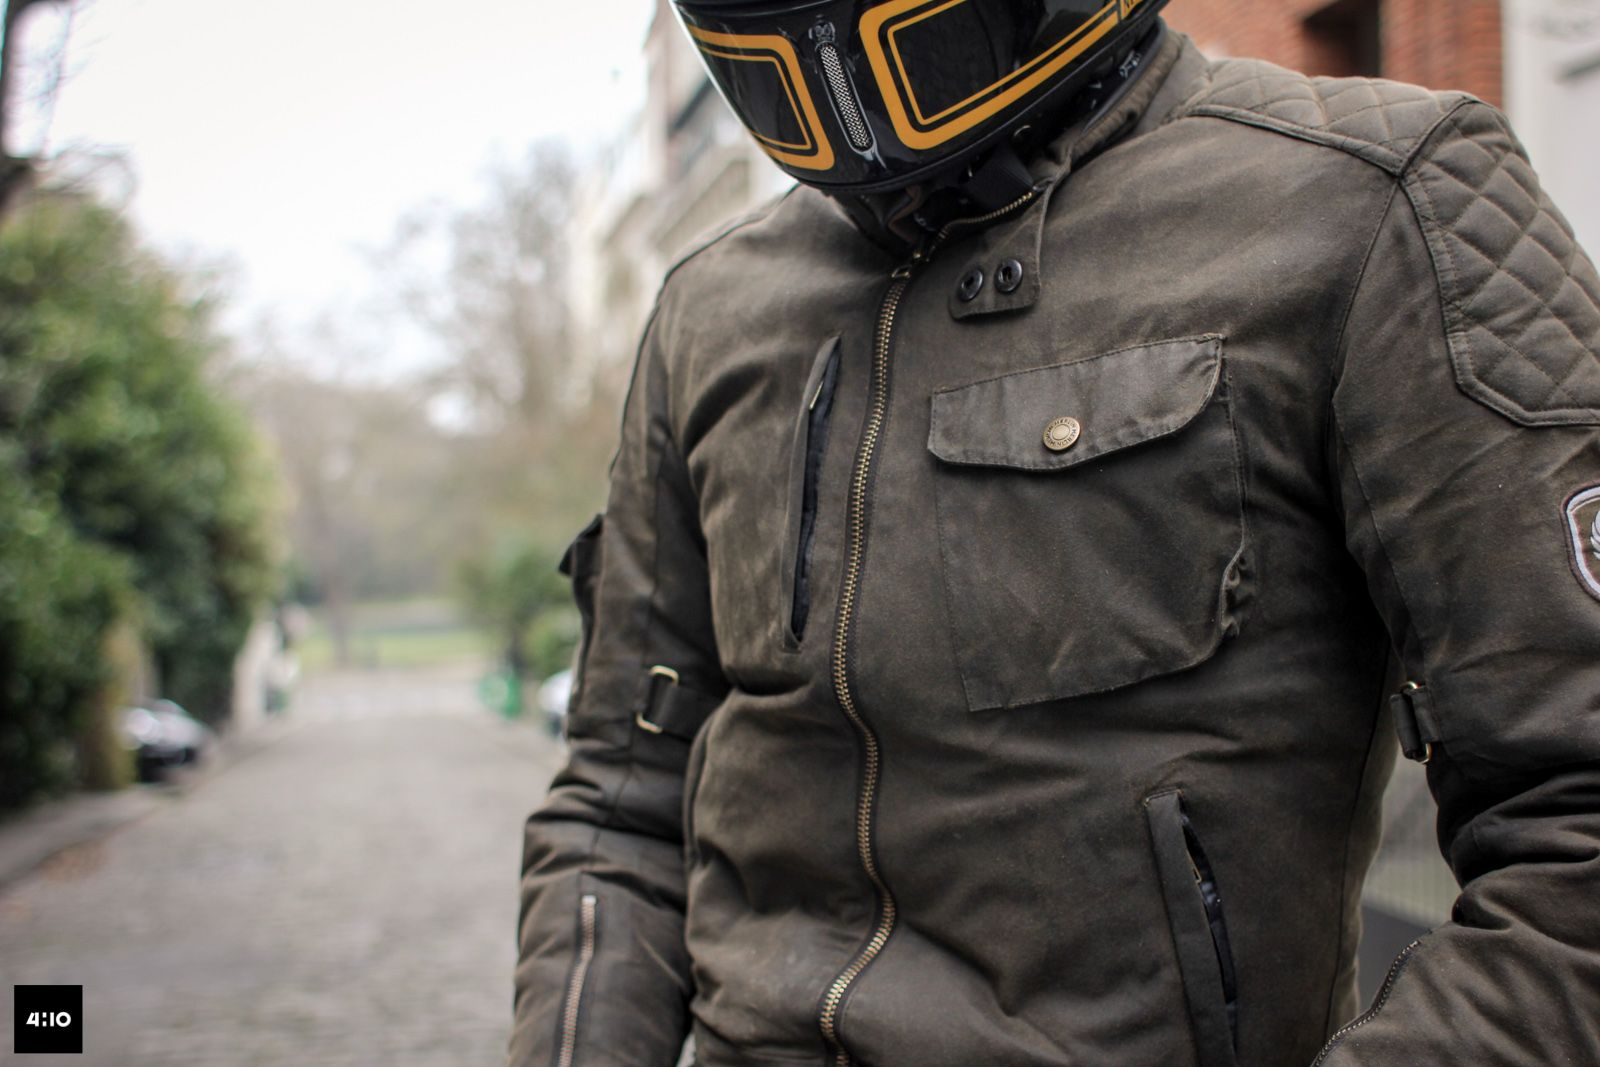 447755a53b4f1 Essai du blouson Merlin Hamstall   My Style   Motorcycle outfit ...